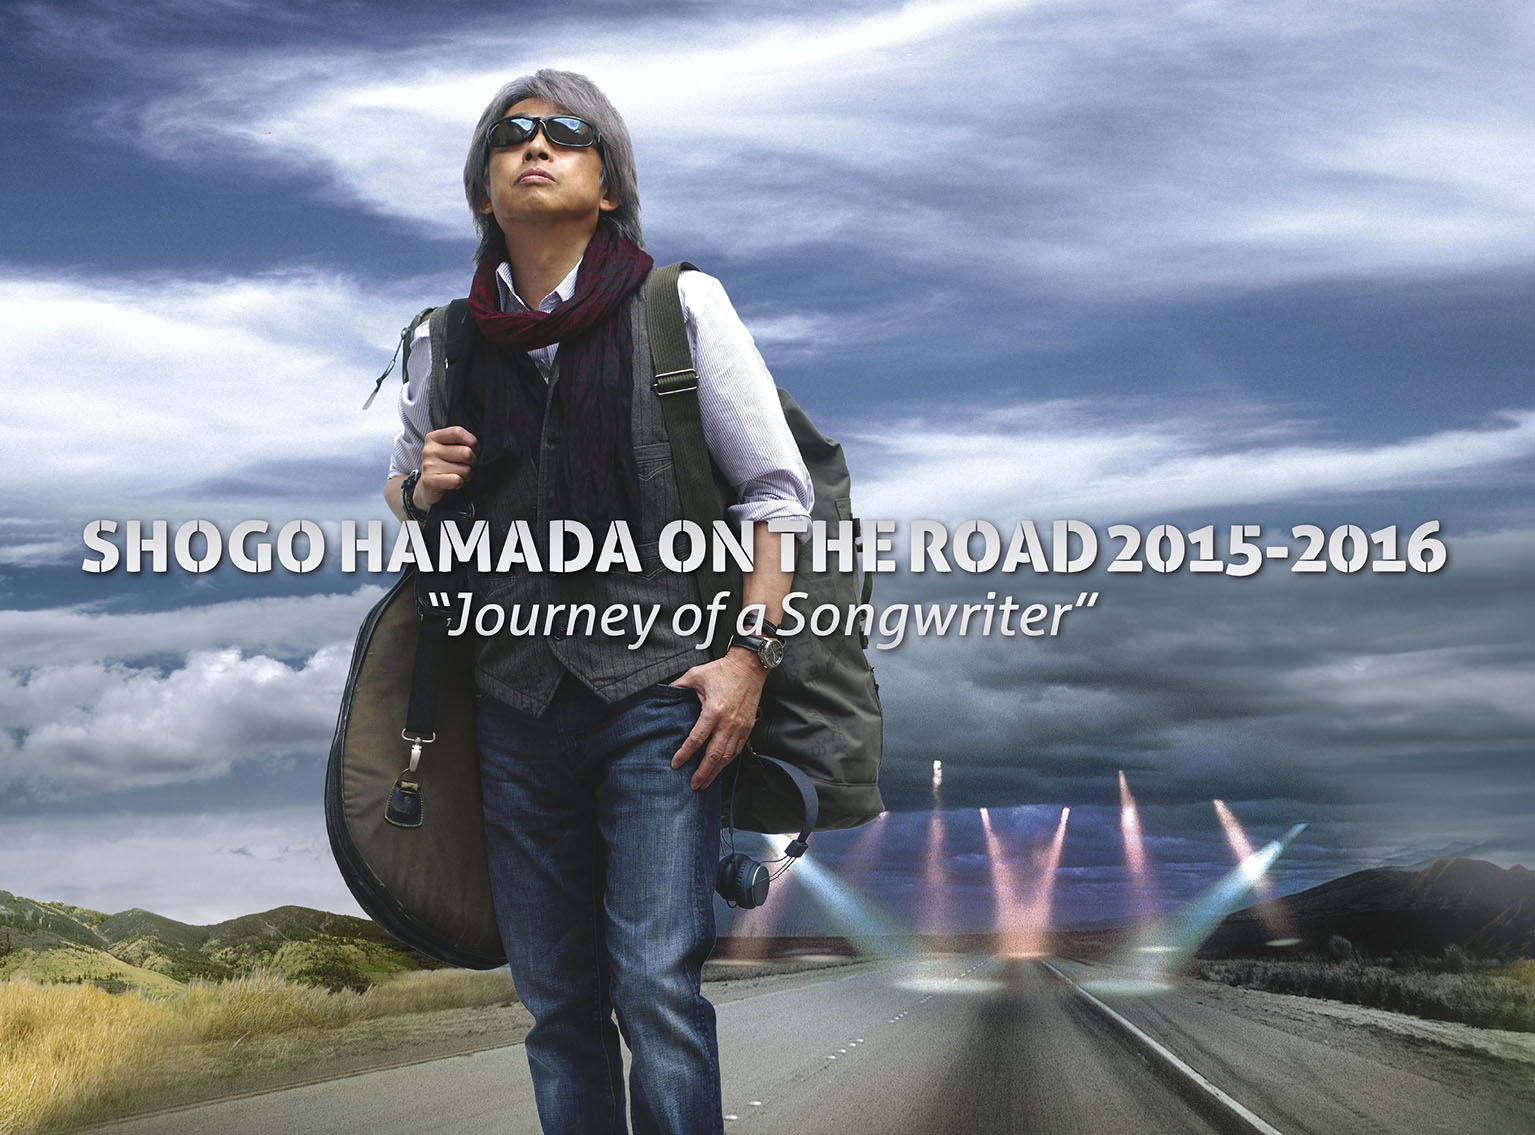 "SHOGO HAMADA ON THE ROAD 2015-2016""Journey of a Songwriter""(完全生産限定盤) [ 浜田省吾 ]"